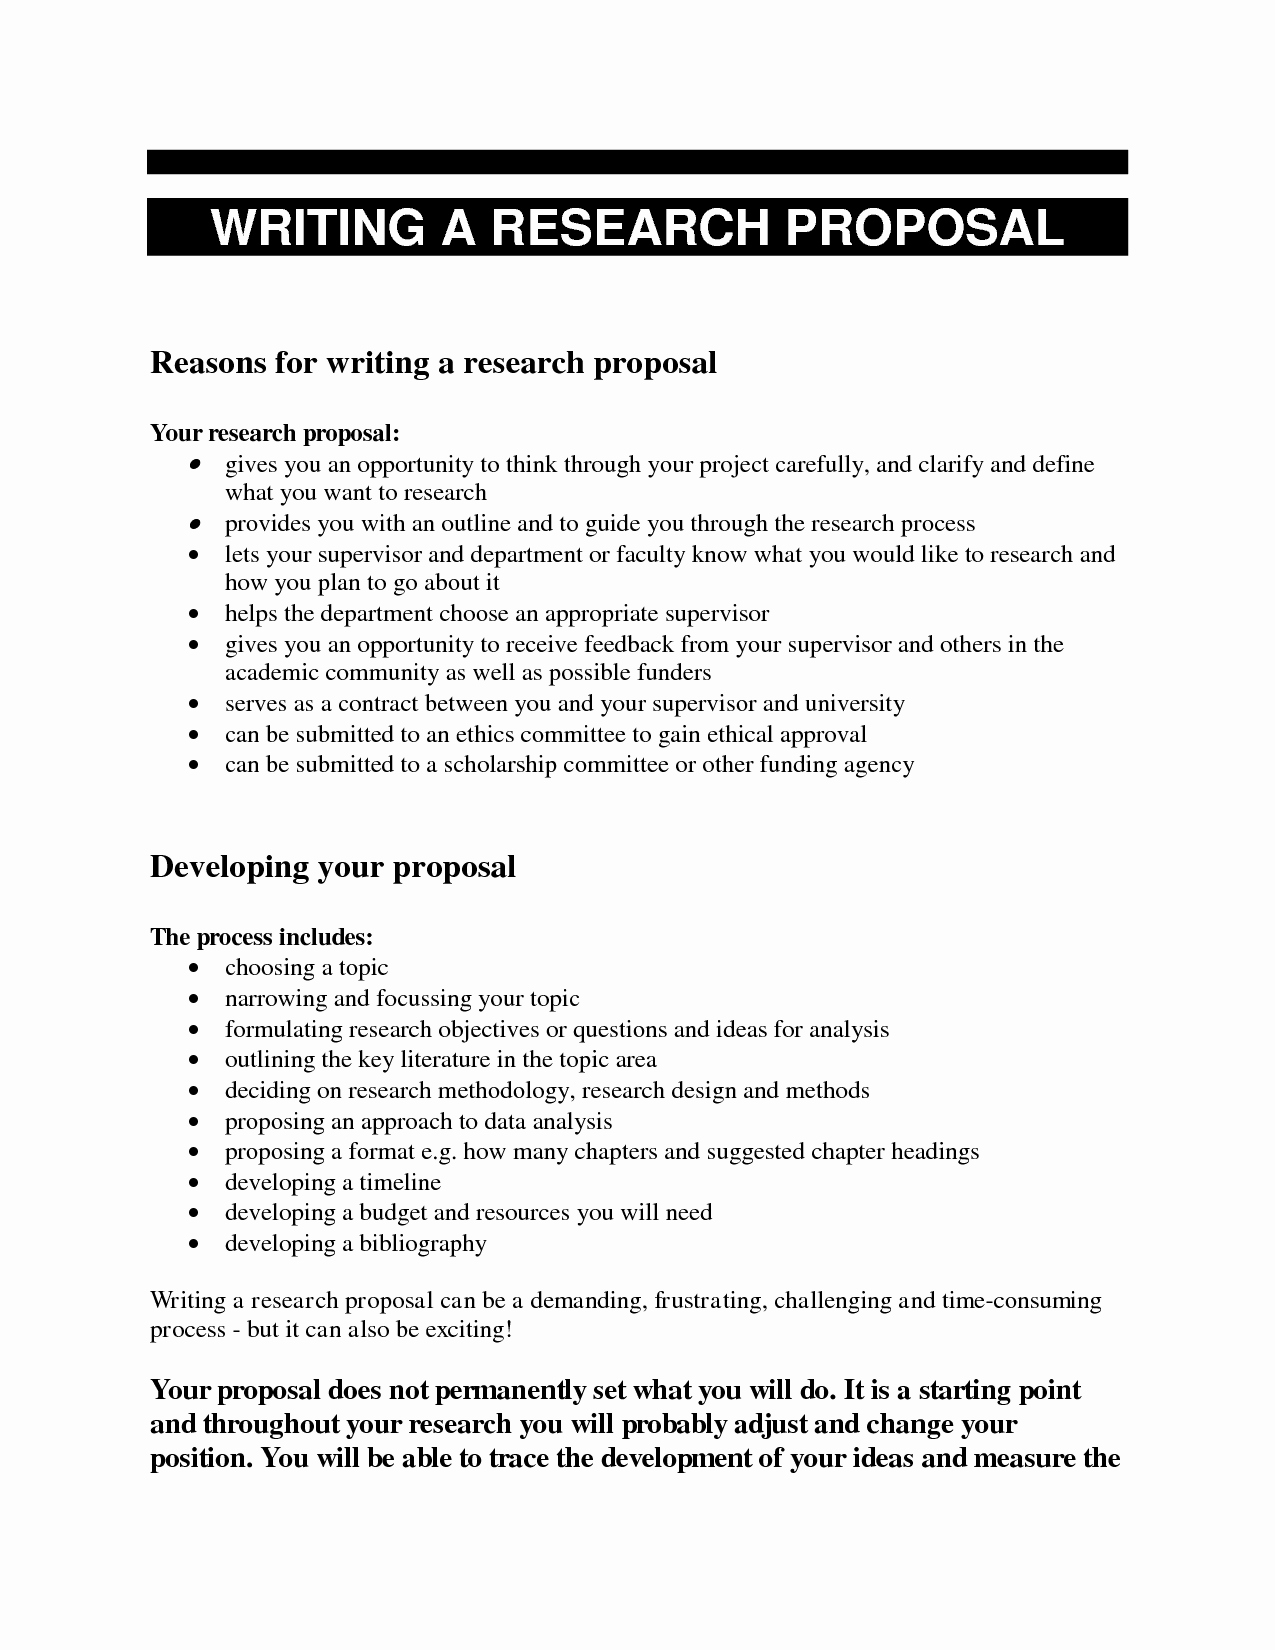 The Boy In The Striped Pyjamas Essay Questions  Essay On Yoga Benefits also Obesity Essay Thesis  Research Essay Proposal Template For Topics College  Essay Integrity